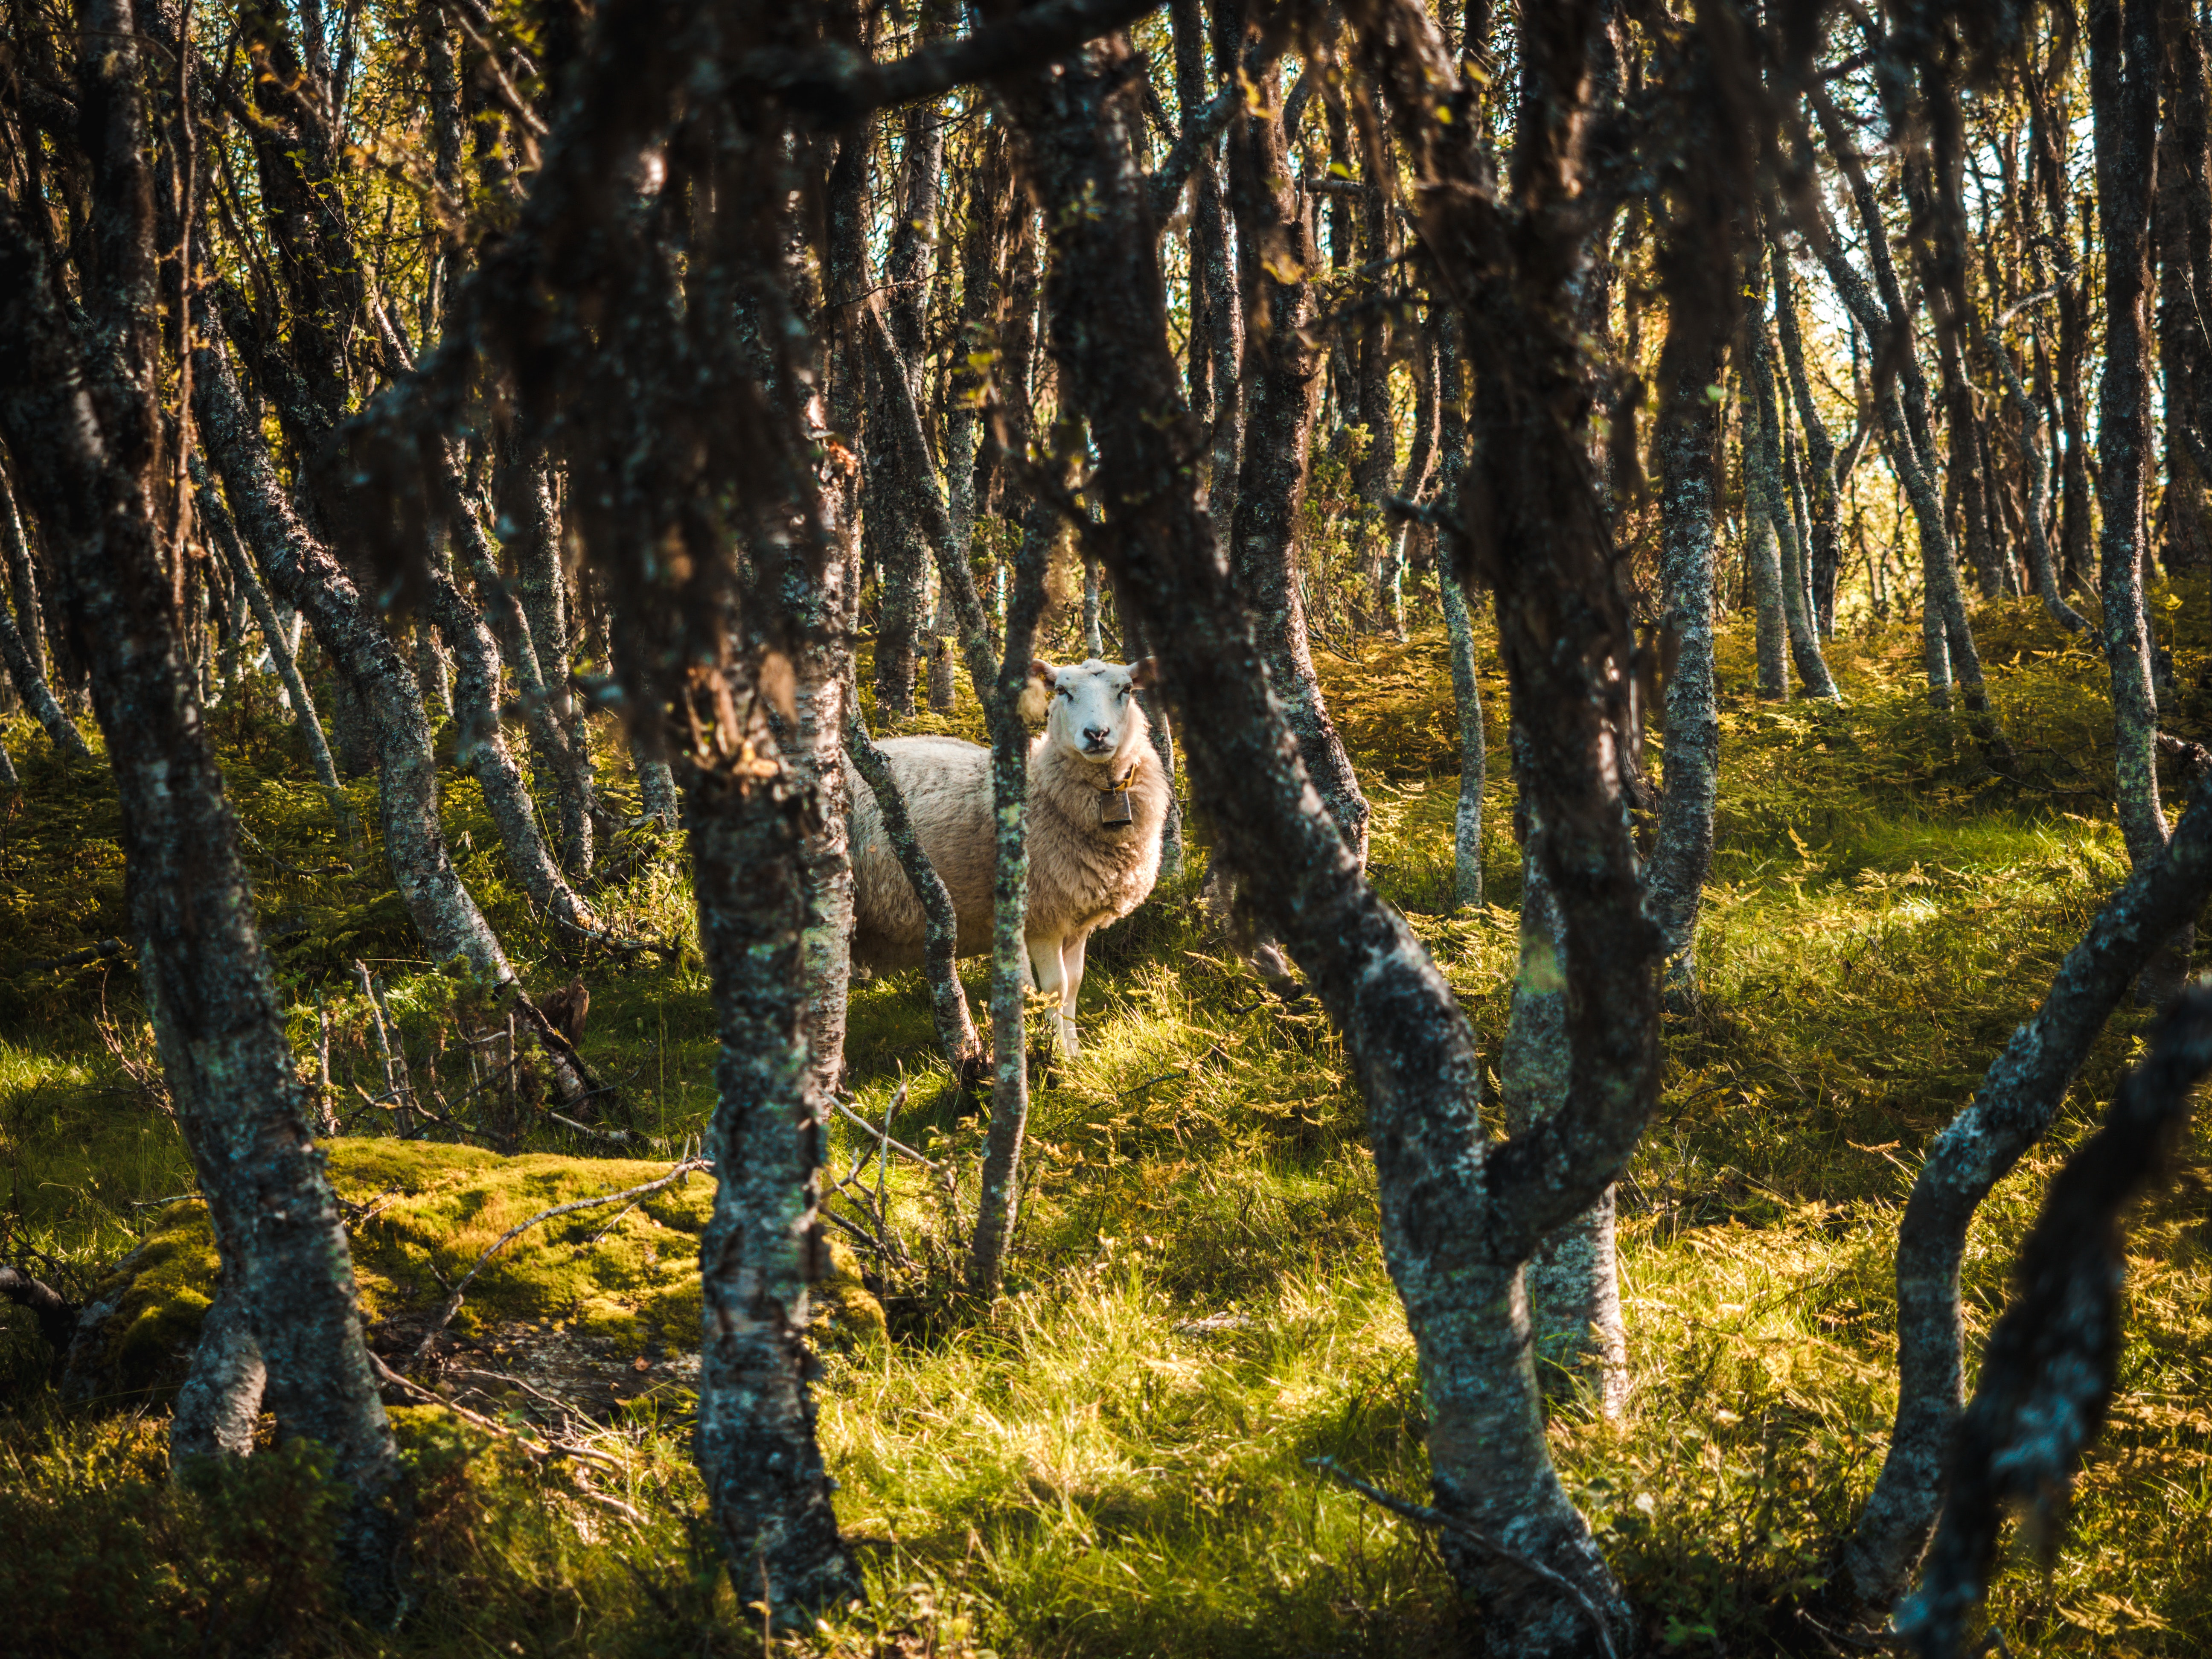 beige sheep in woods at daytime